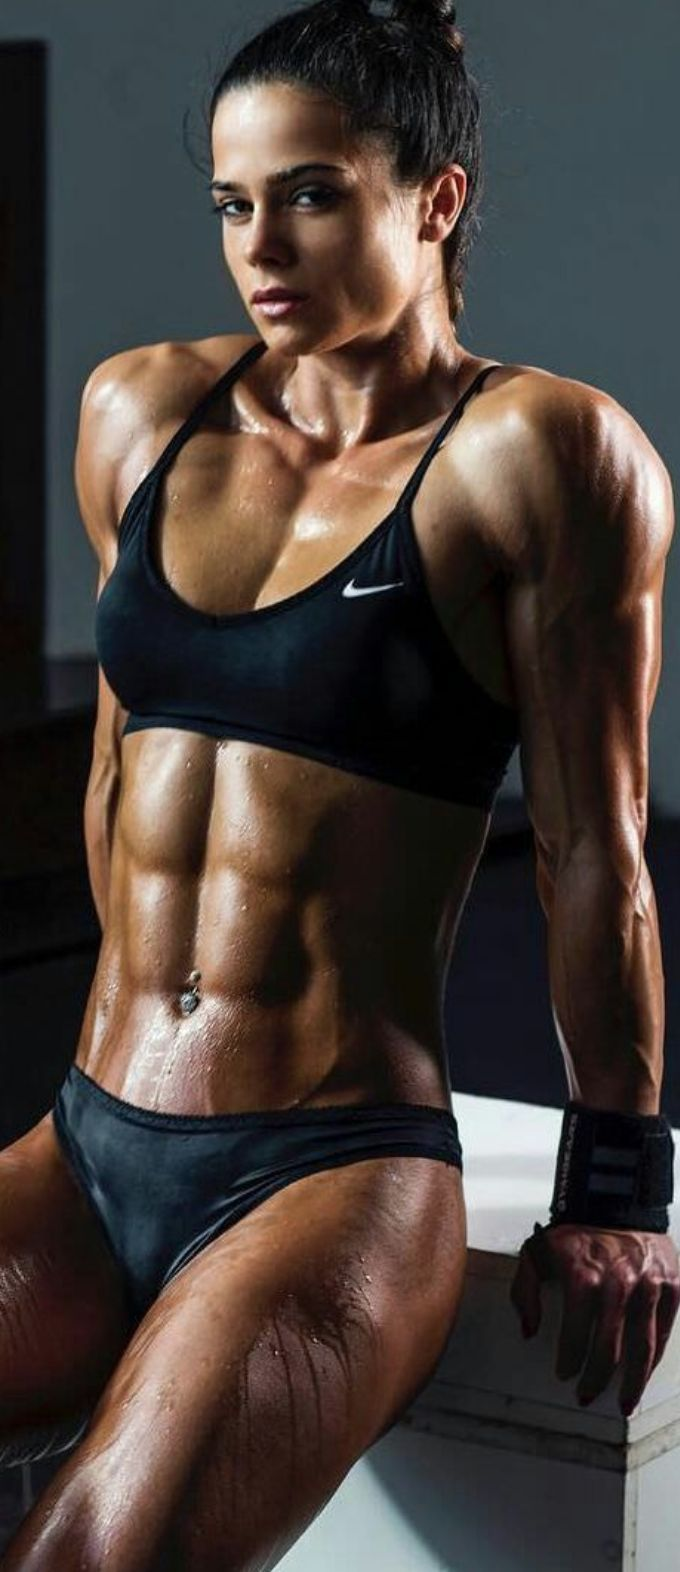 Horny muscle girl massive female bodybuilder ripped strong